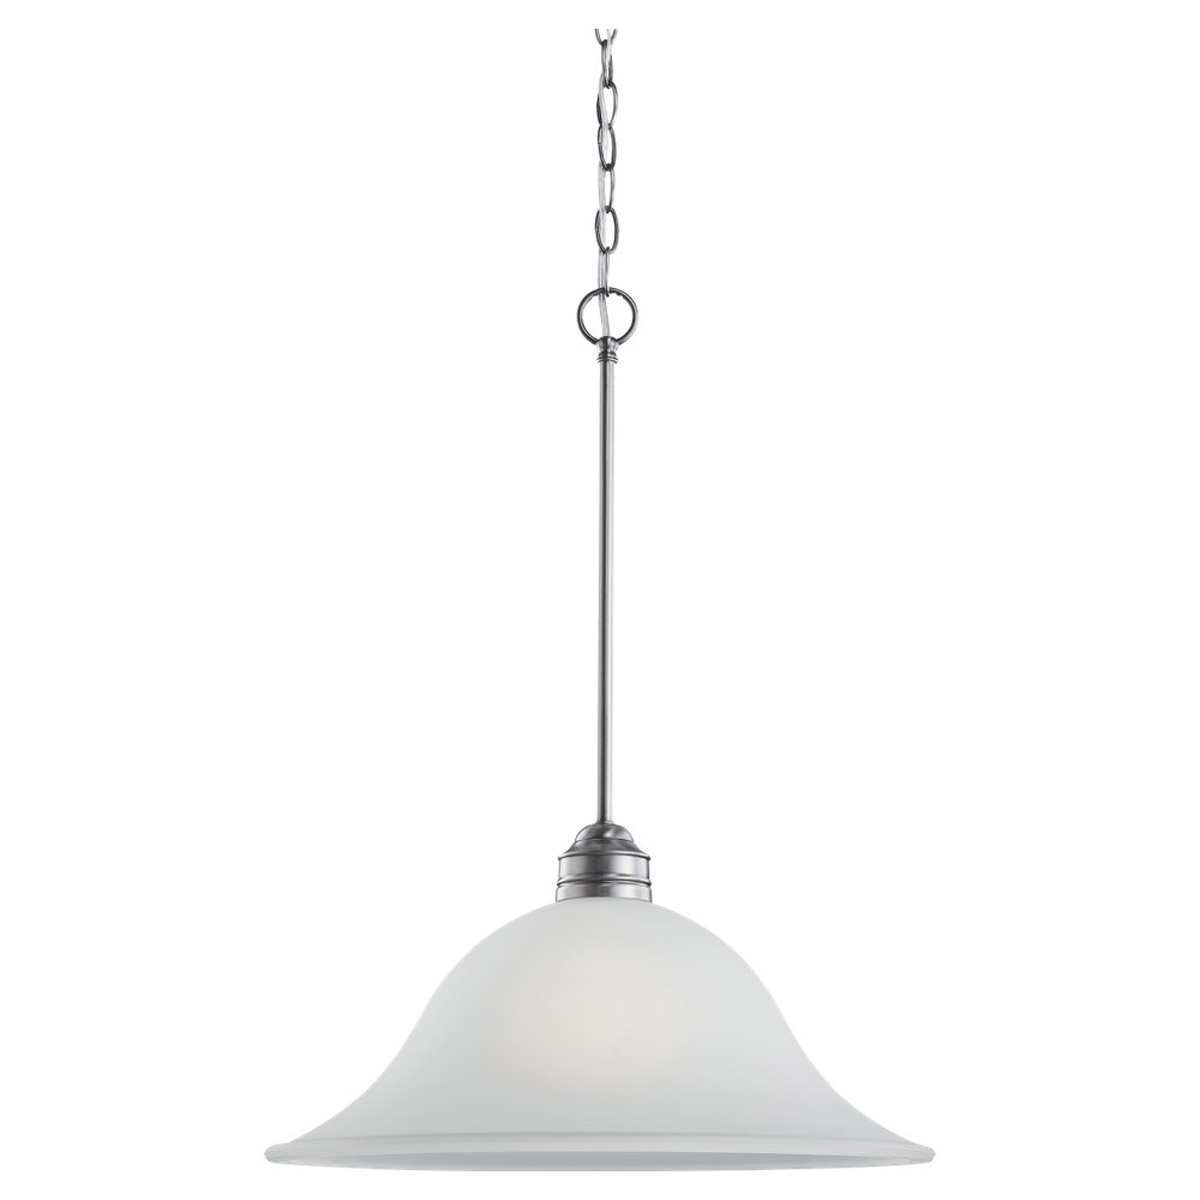 Sea Gull Lighting Gladstone 1 Light Pendant in Antique Brushed Nickel 65850BLE-965 photo